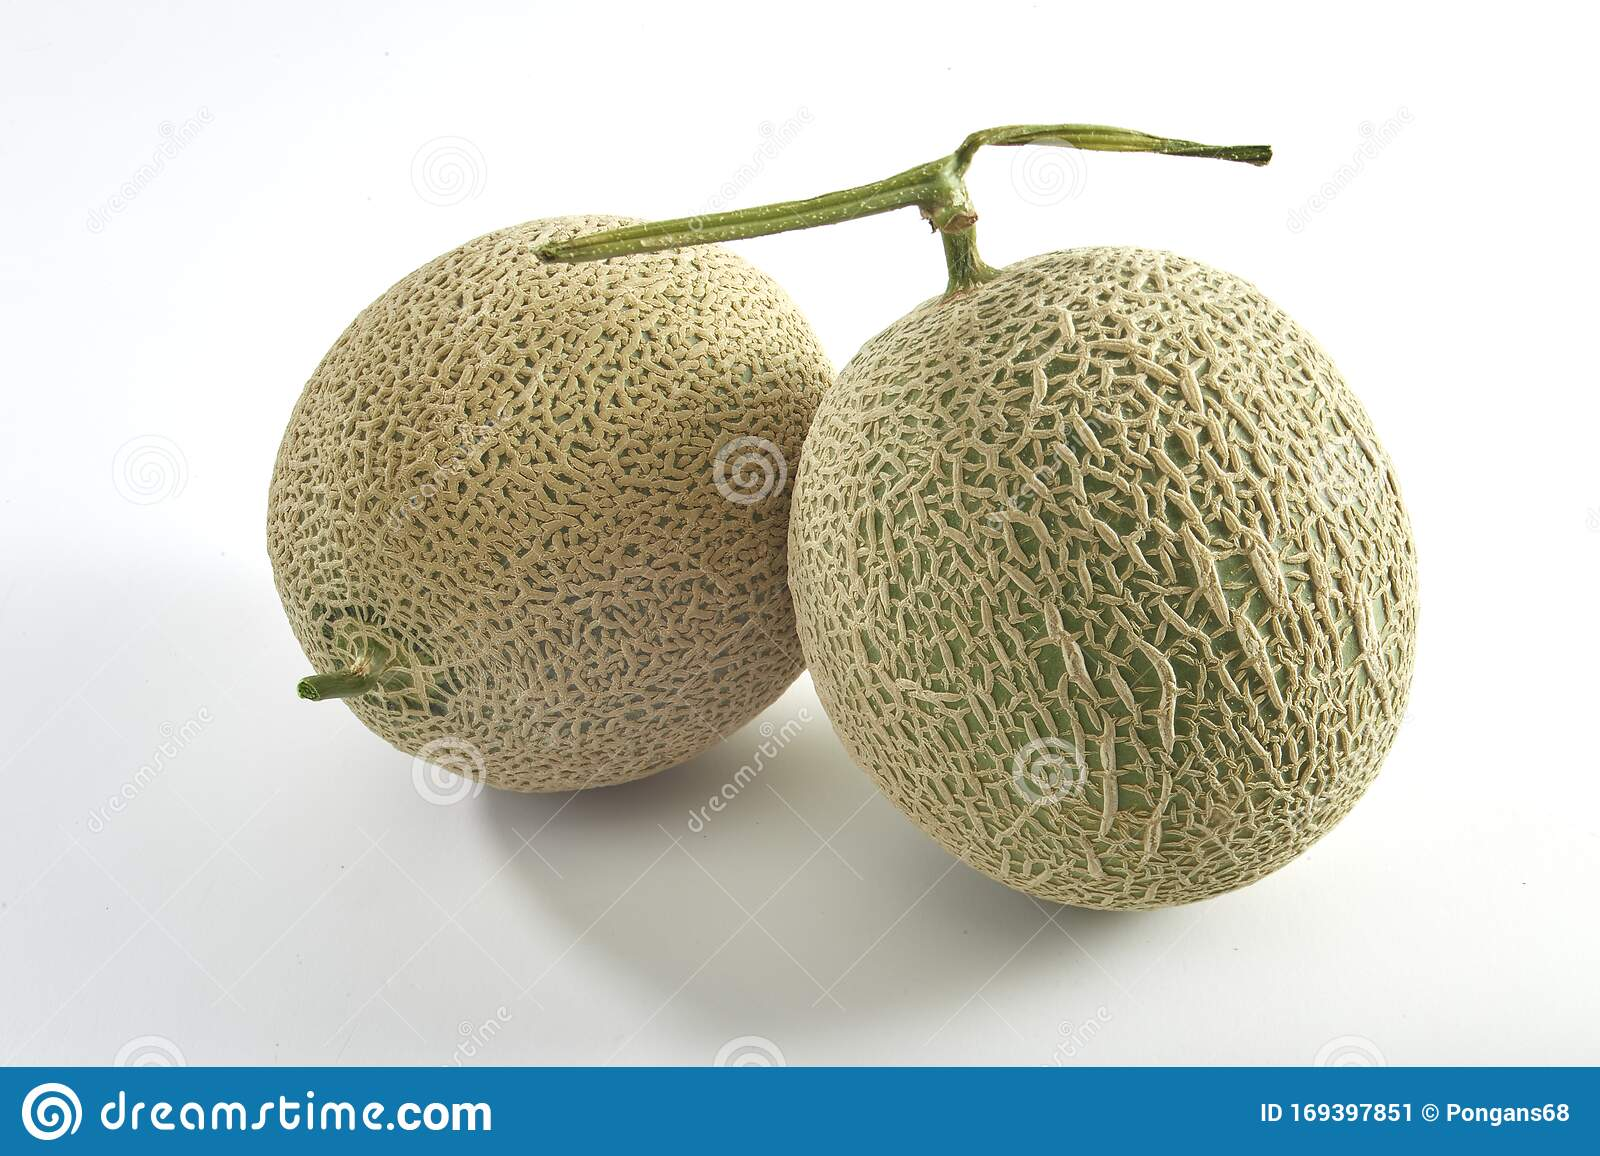 Cantaloupe Melon Isolated On White Background Stock Image Image Of Healthy Nutrition 169397851 It is because of those particular nutrients that we are able to live a longer life. dreamstime com